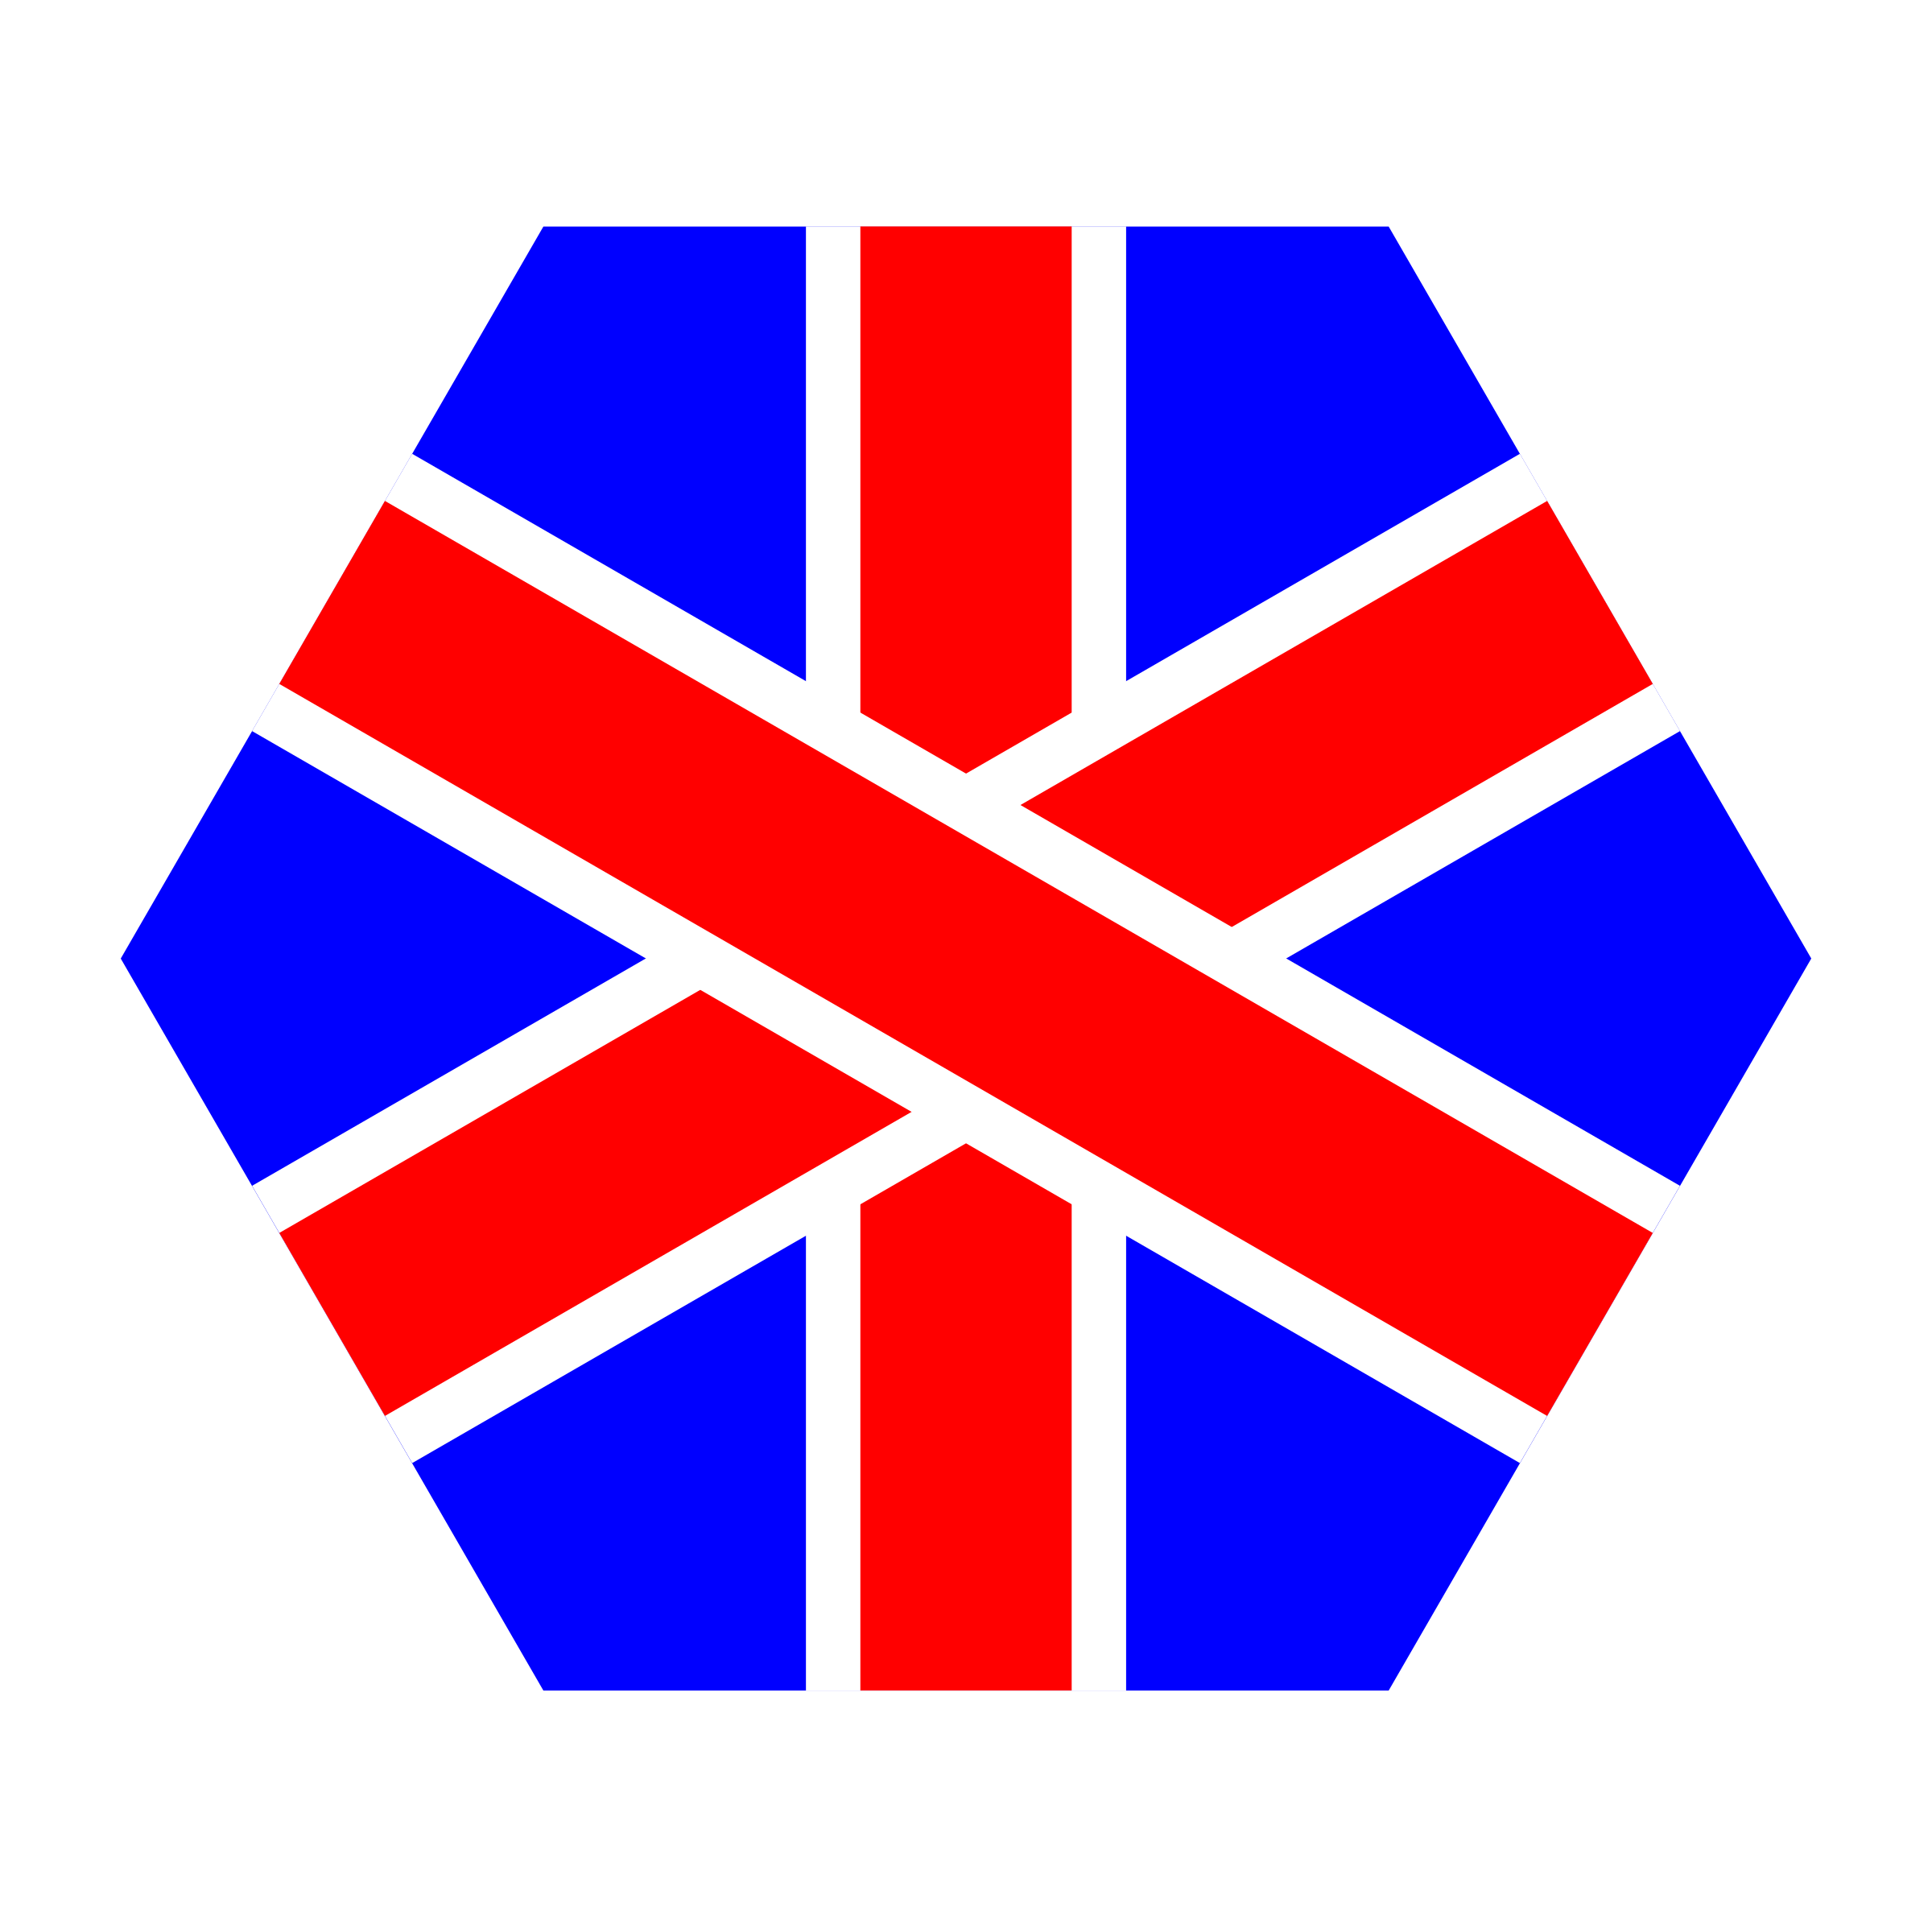 english hexagon by 10binary